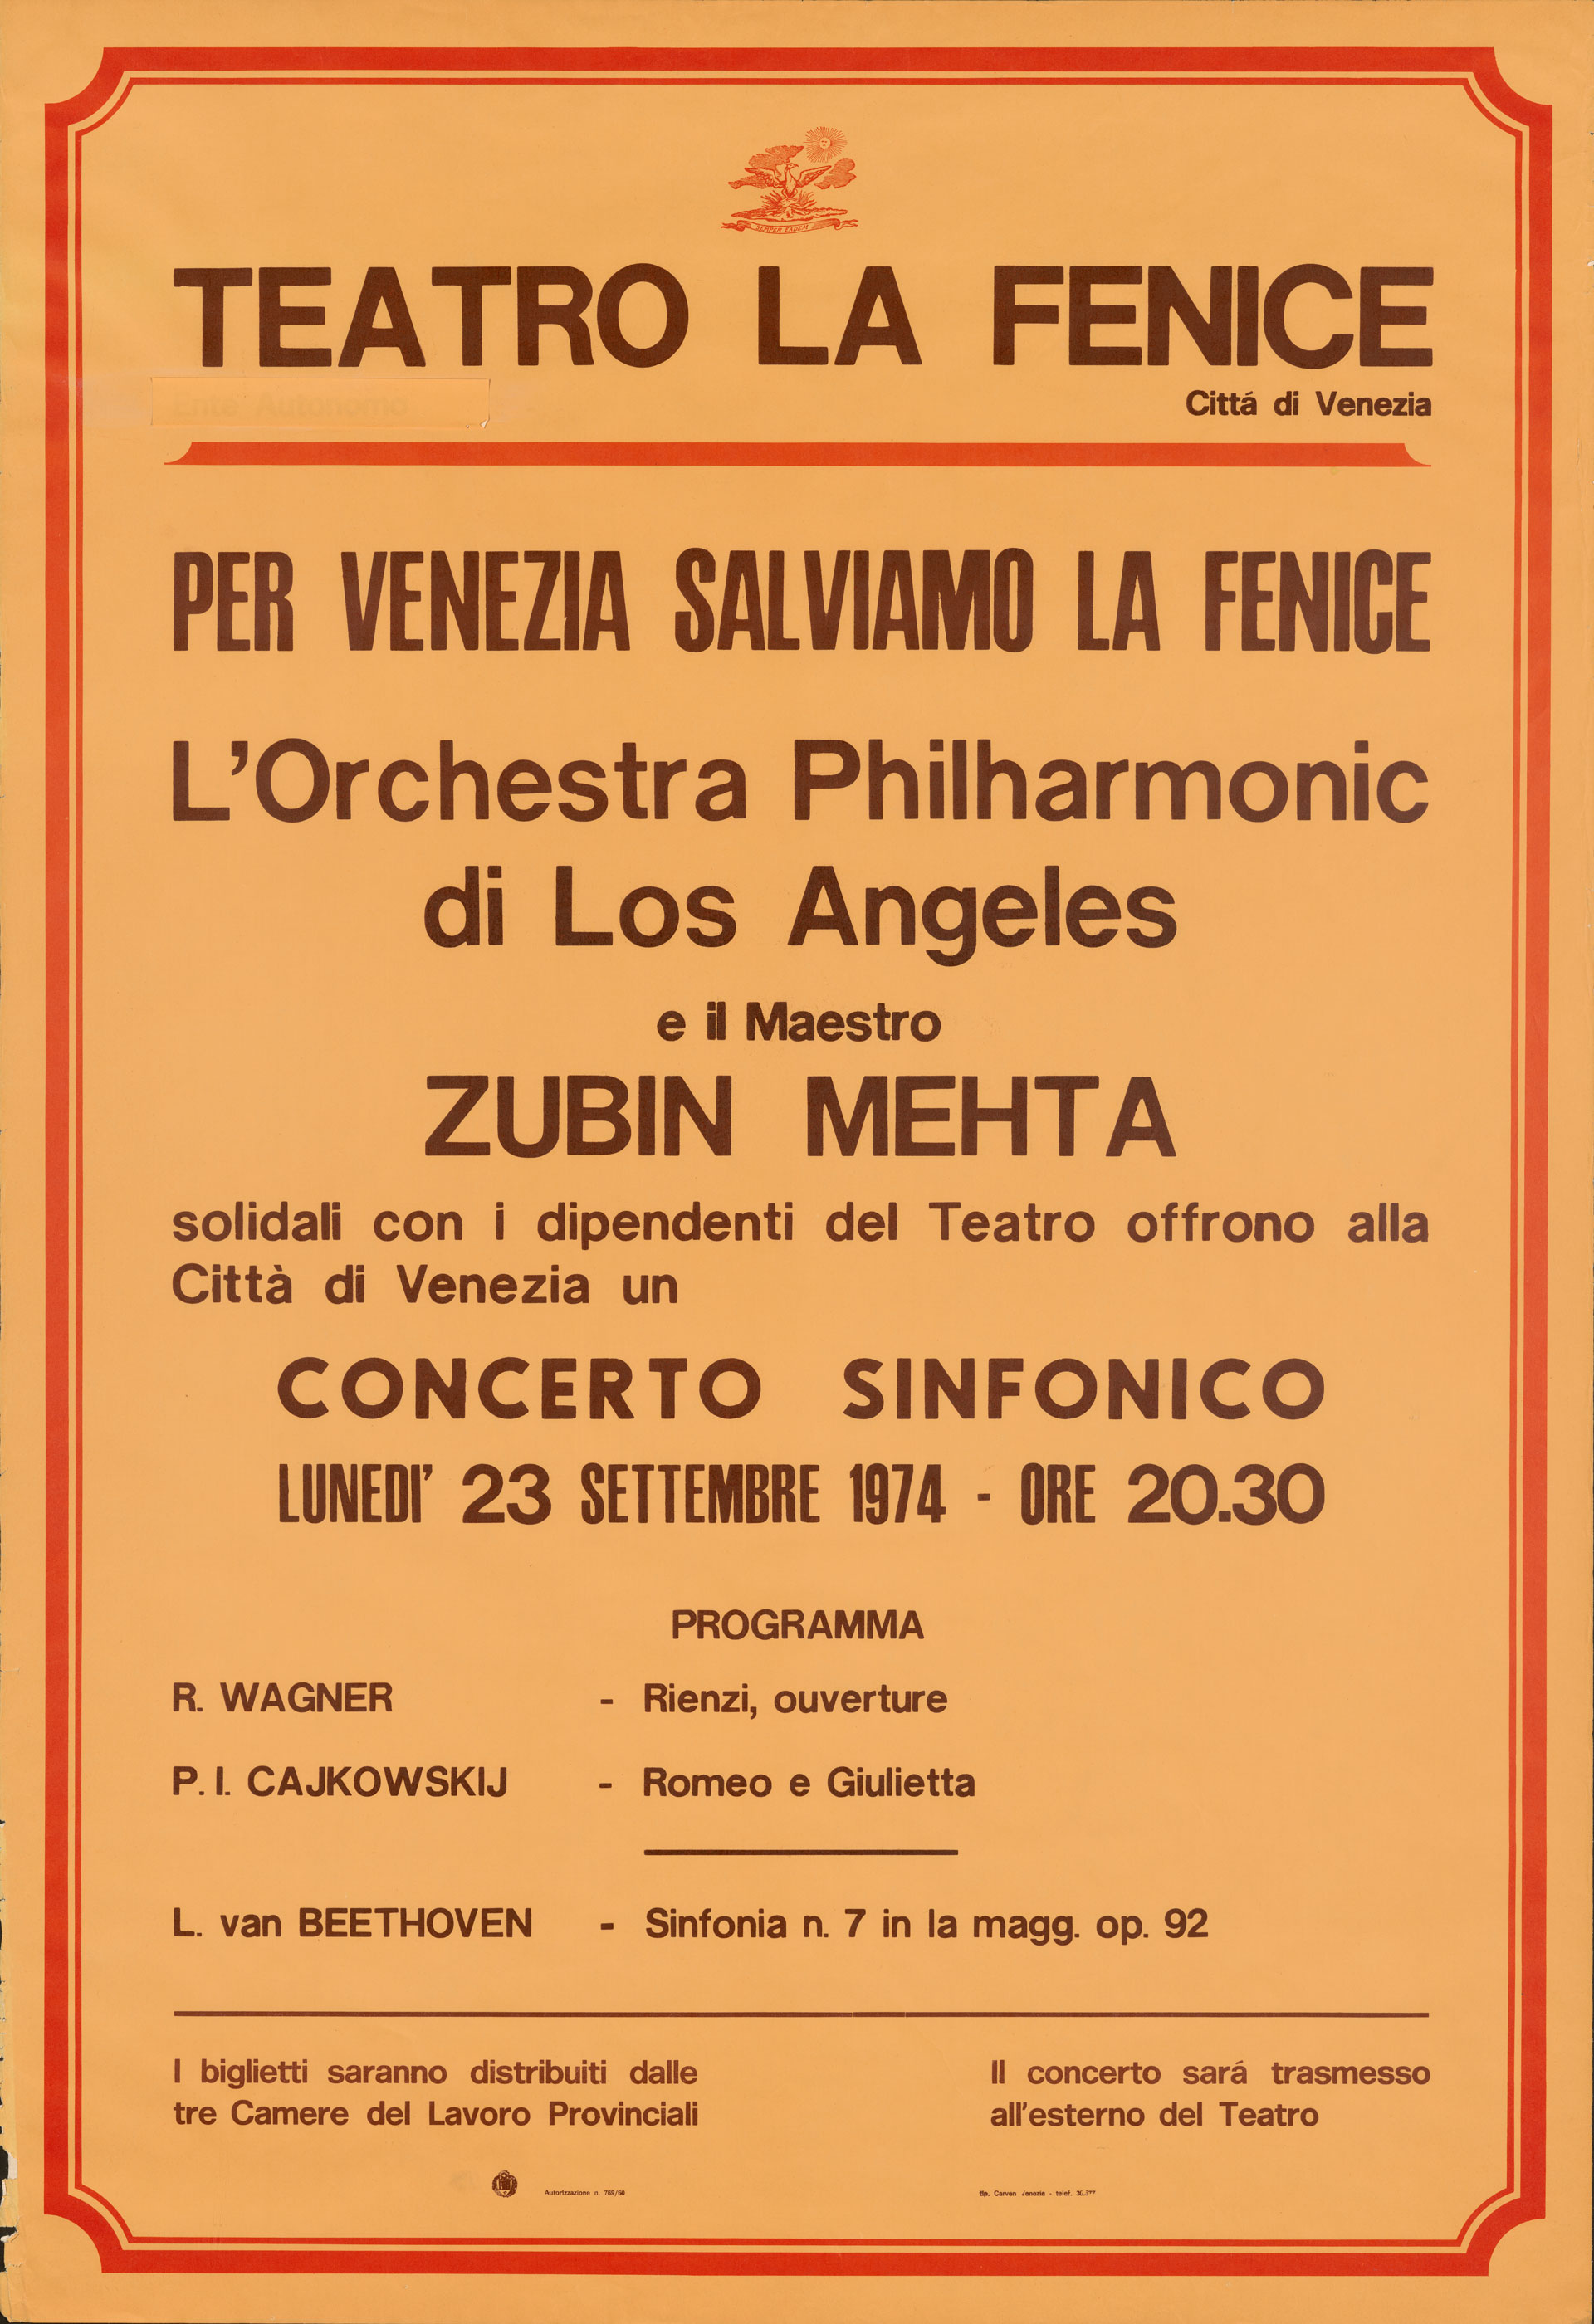 Poster advertising a benefit concert in Venice that was performed in solidarity with striking theater employees.